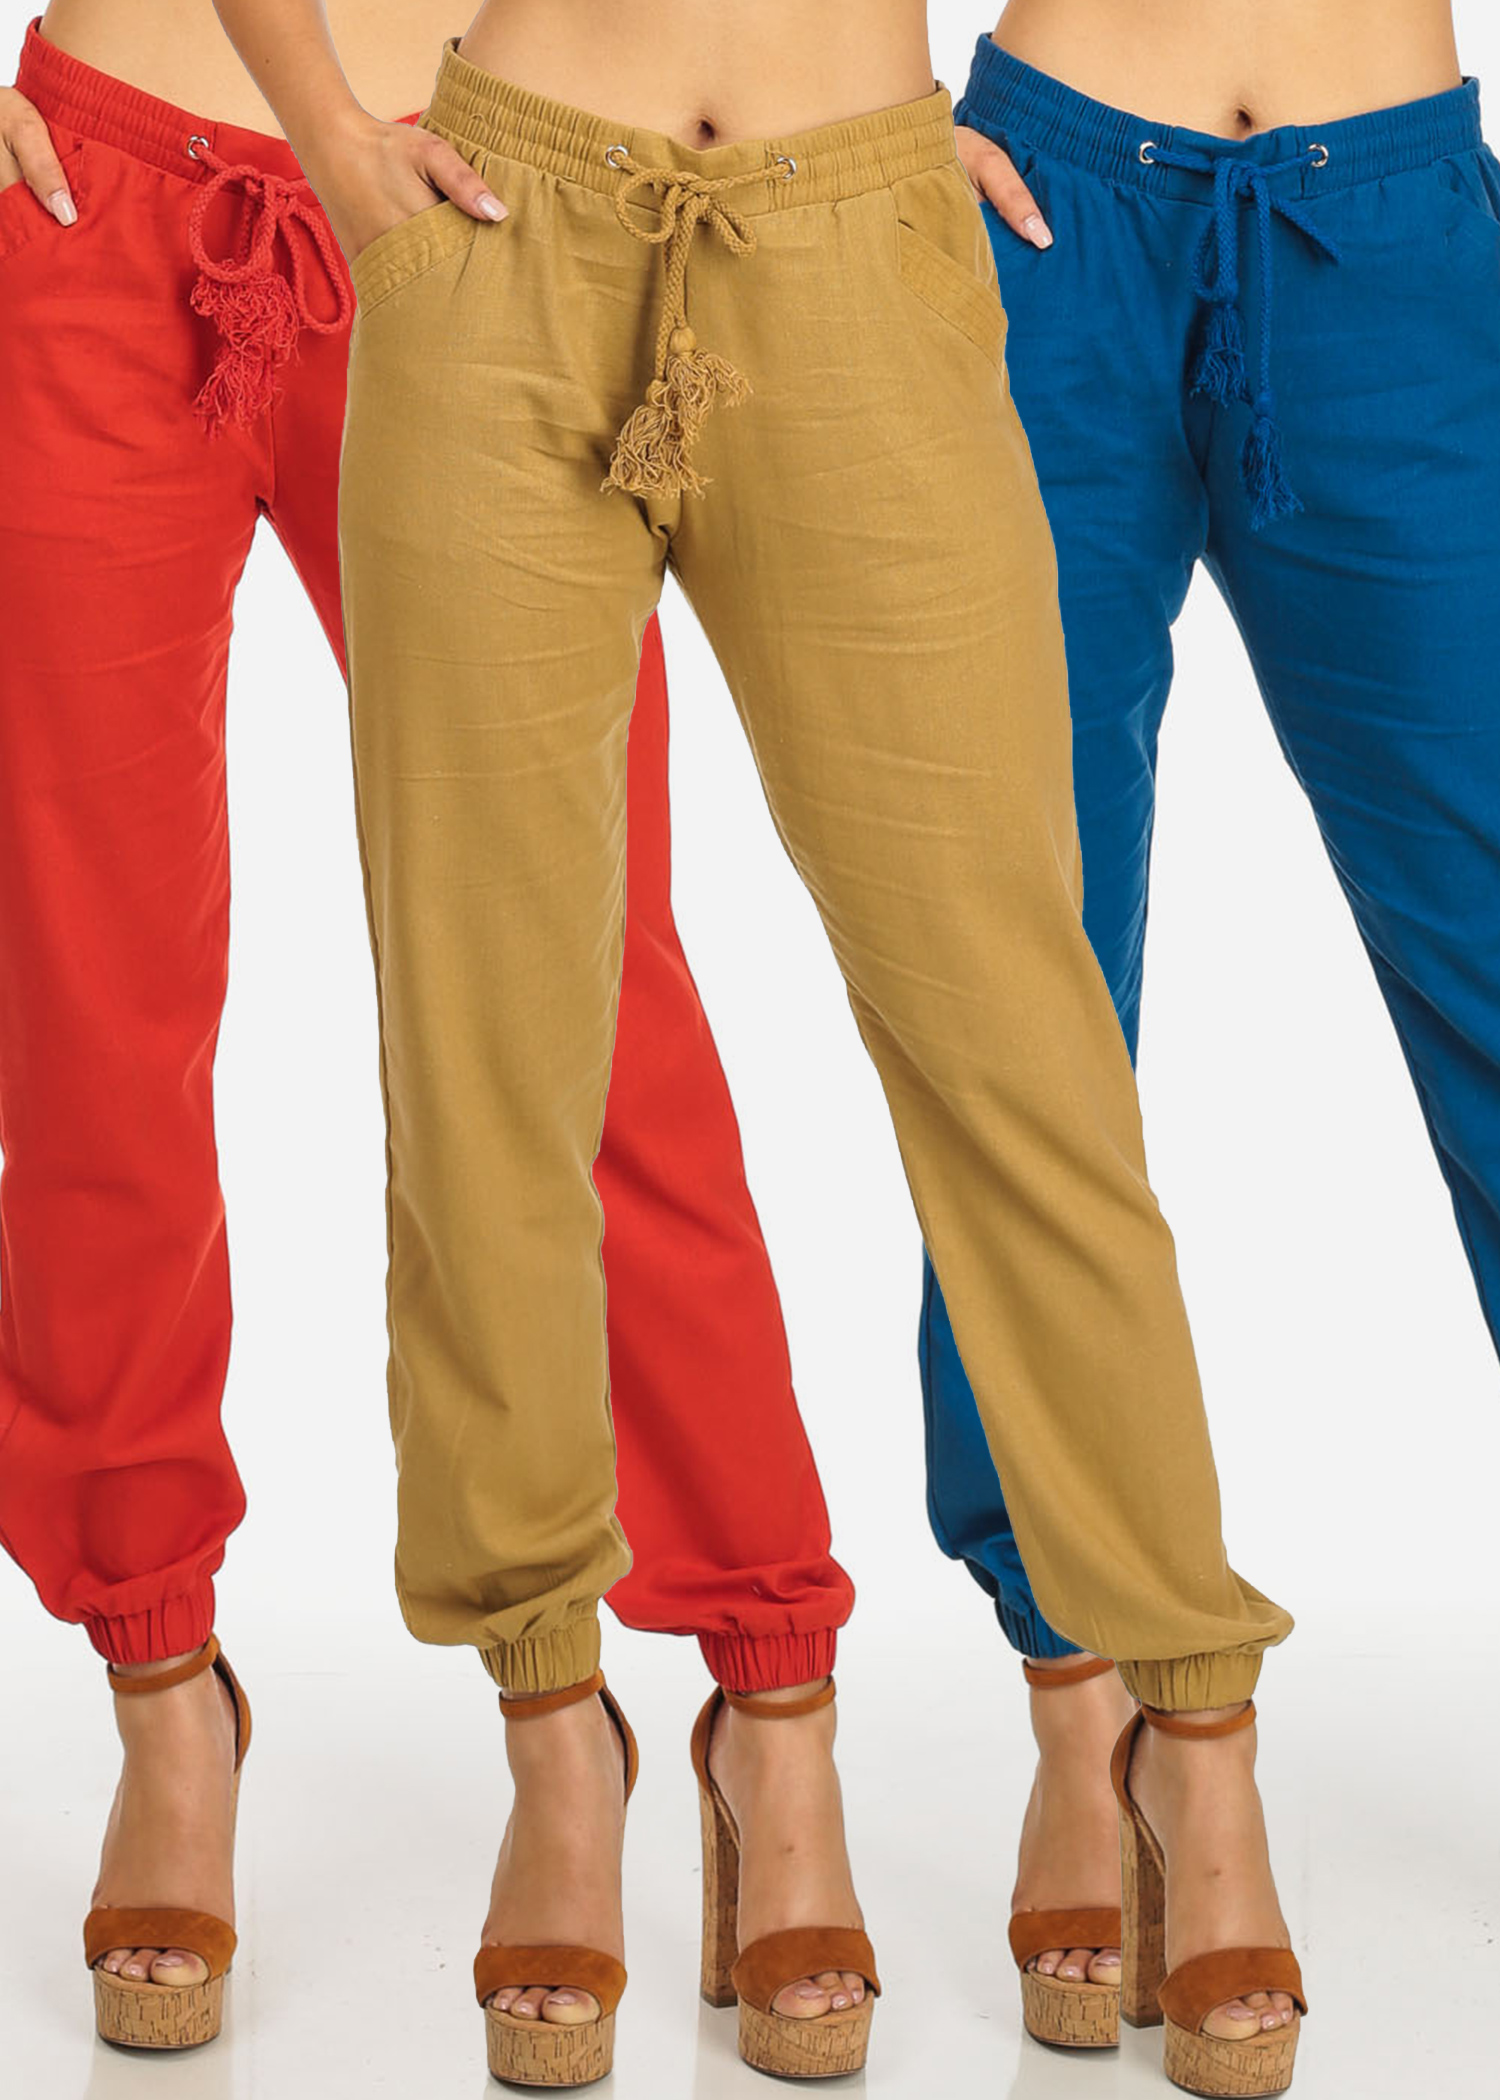 MEGA PACK DEAL! Womens Juniors (3 Pack) Solid Beige Red Royal Blue High Rise Drawstring Skinny Linen Pants